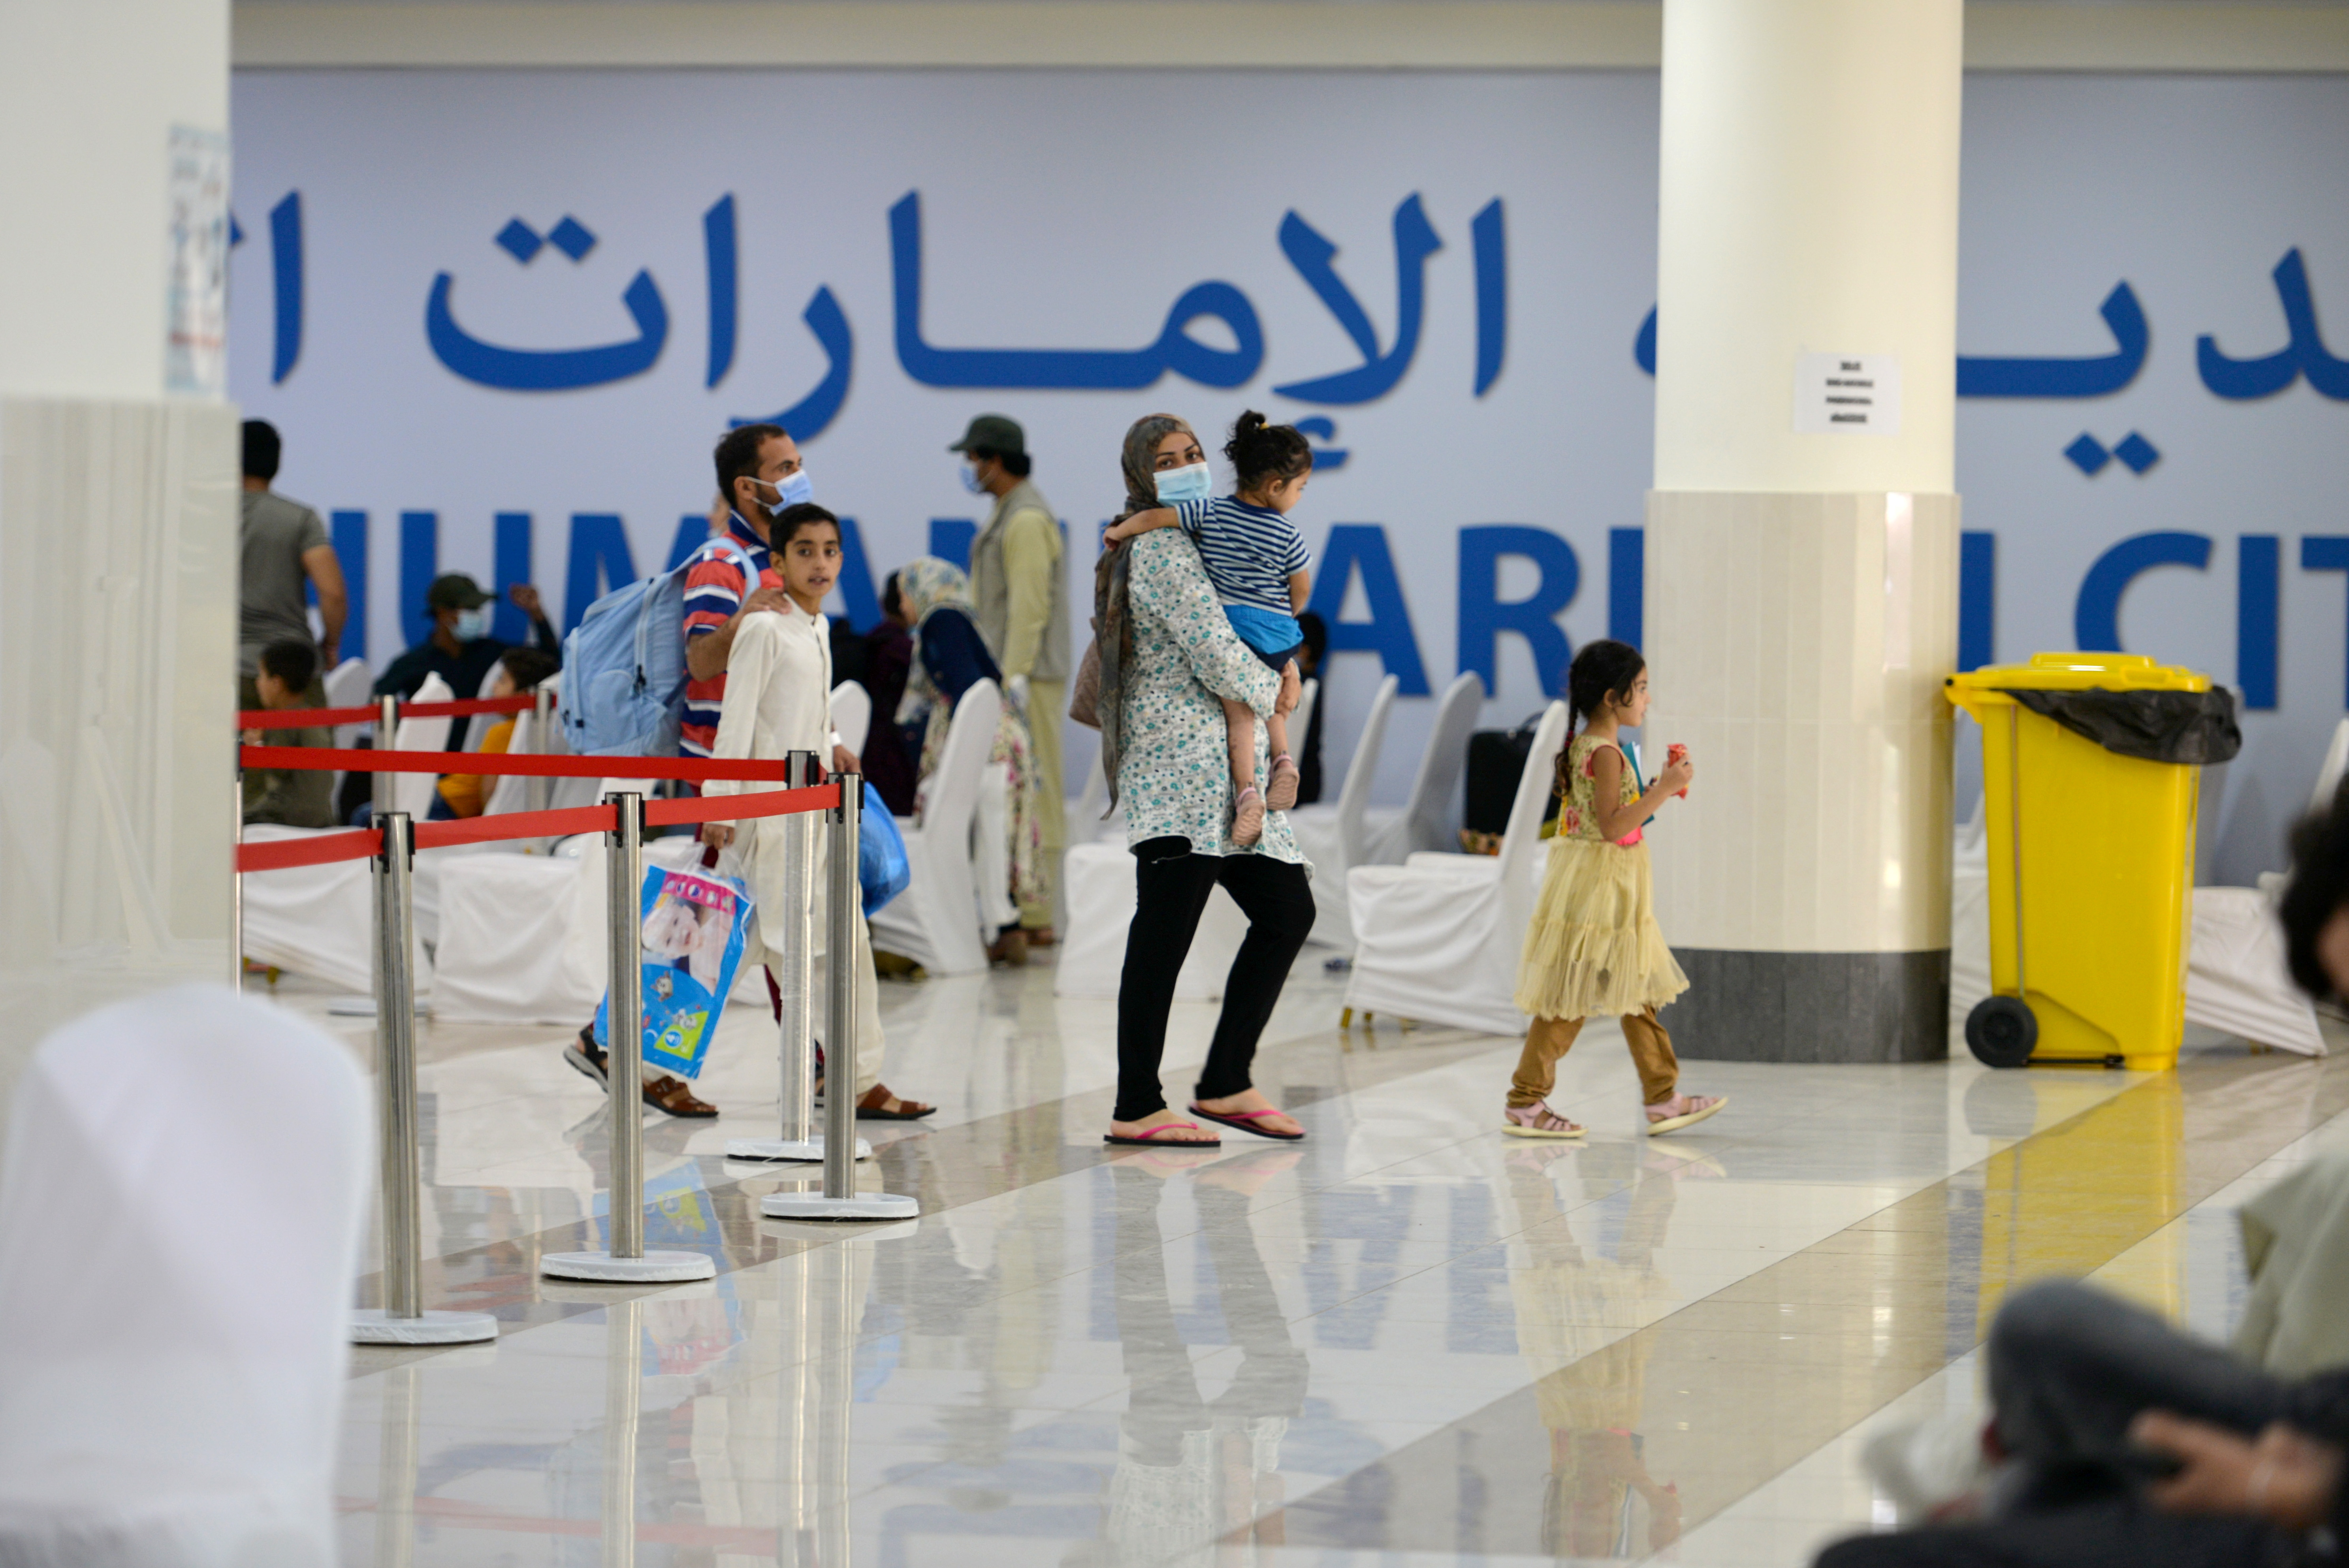 Evacuees from Afghanistan arrive at Emirates Humanitarian City in Abu Dhabi, UAE, August 28, 2021. REUTERS/Vidhyaa Chandramohan/File Photo